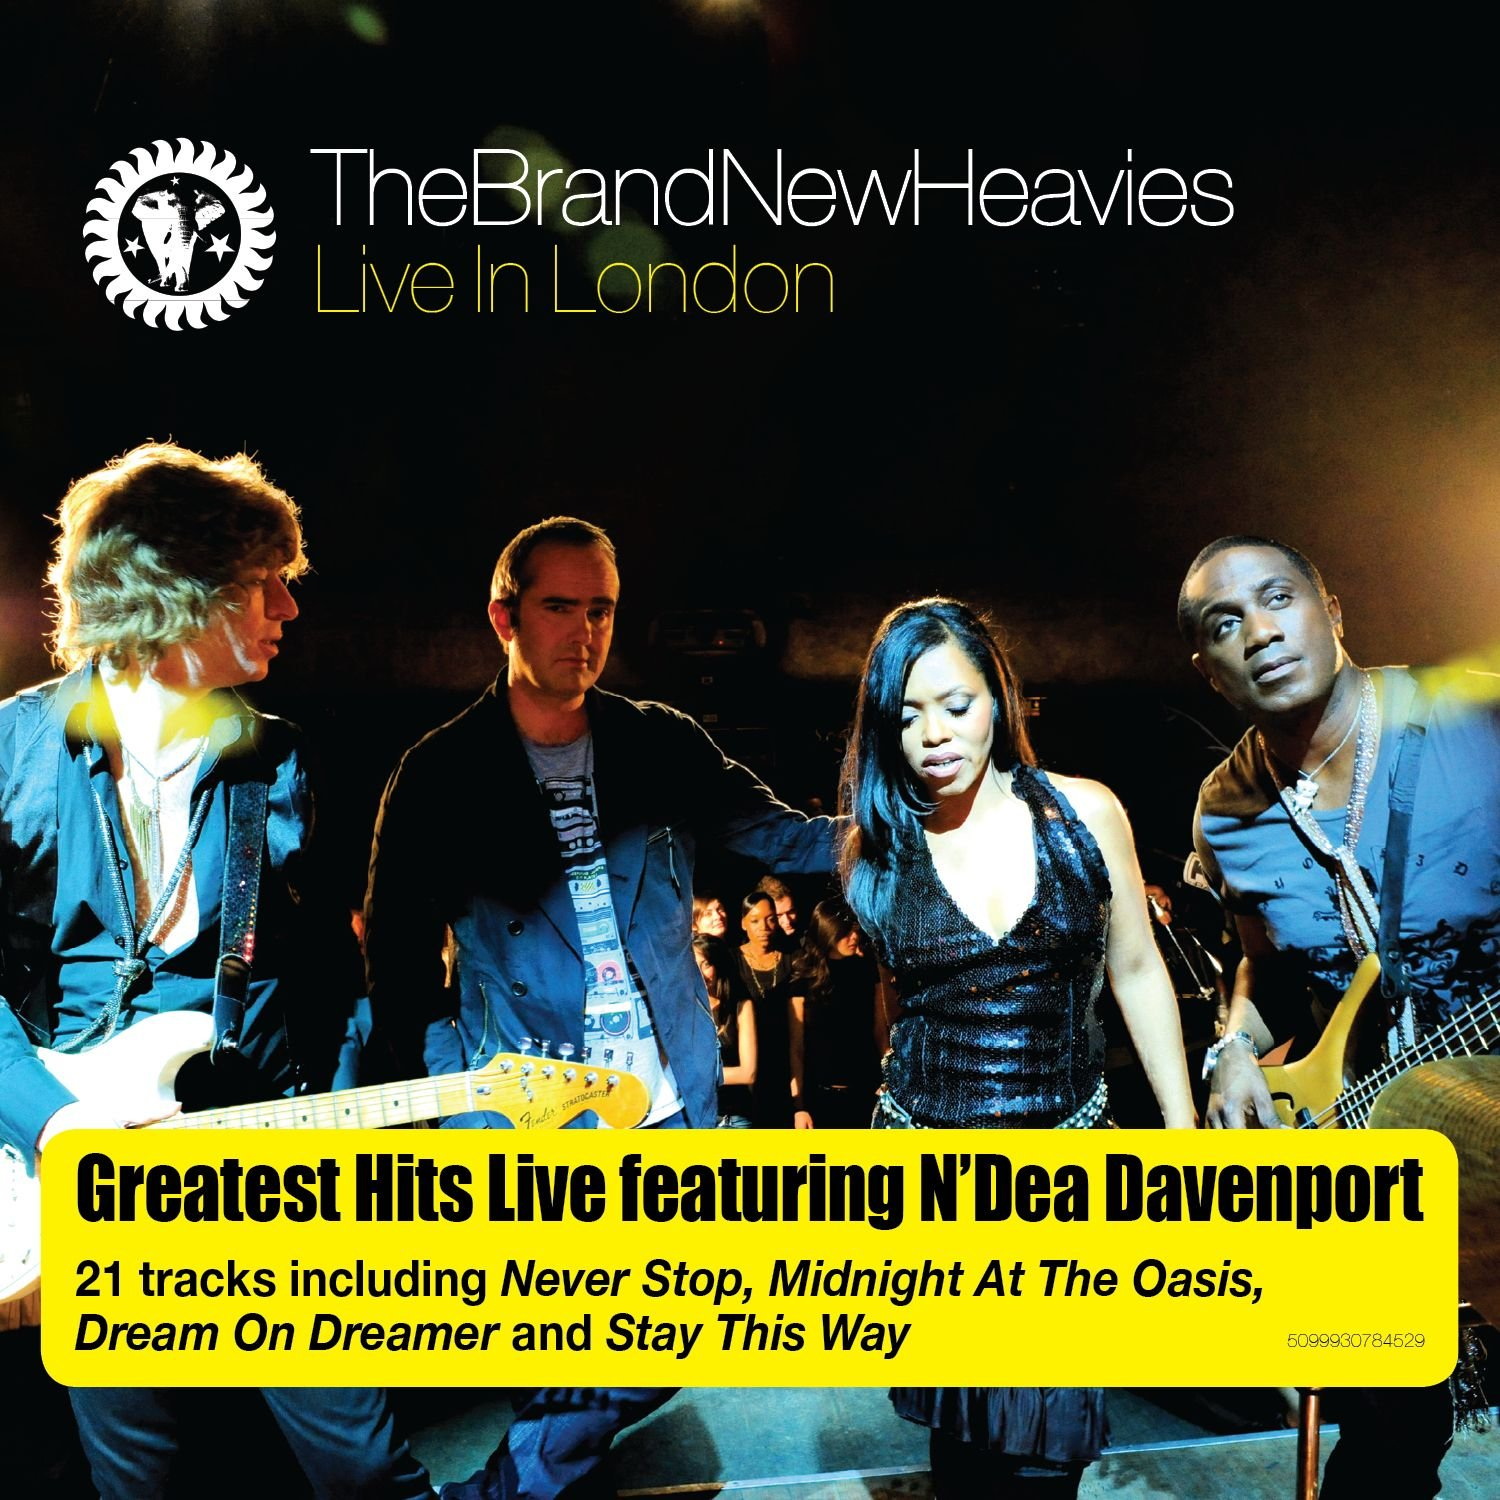 Live In London [2 CD] by Brand New Heavies, The (Image #1)